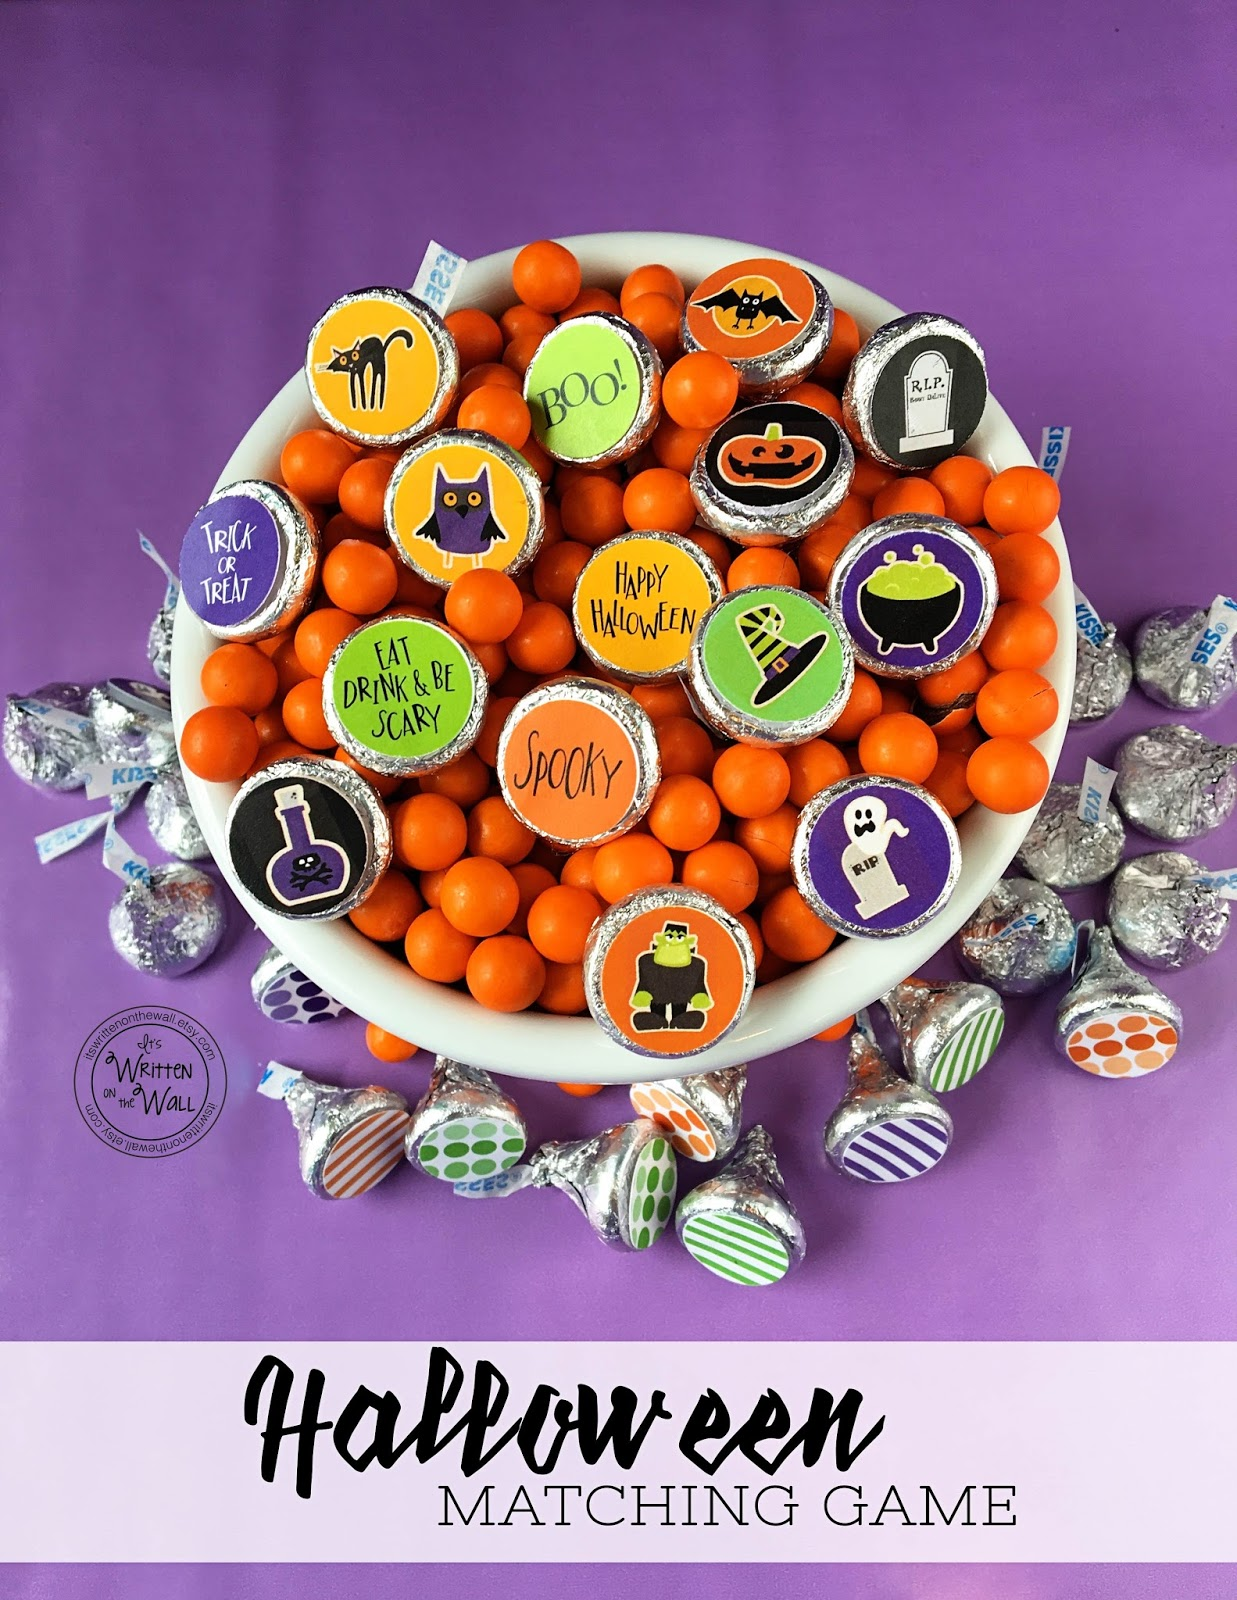 It S Written On The Wall Sweet Halloween Matching Game With Hershey Kisses Game Pieces